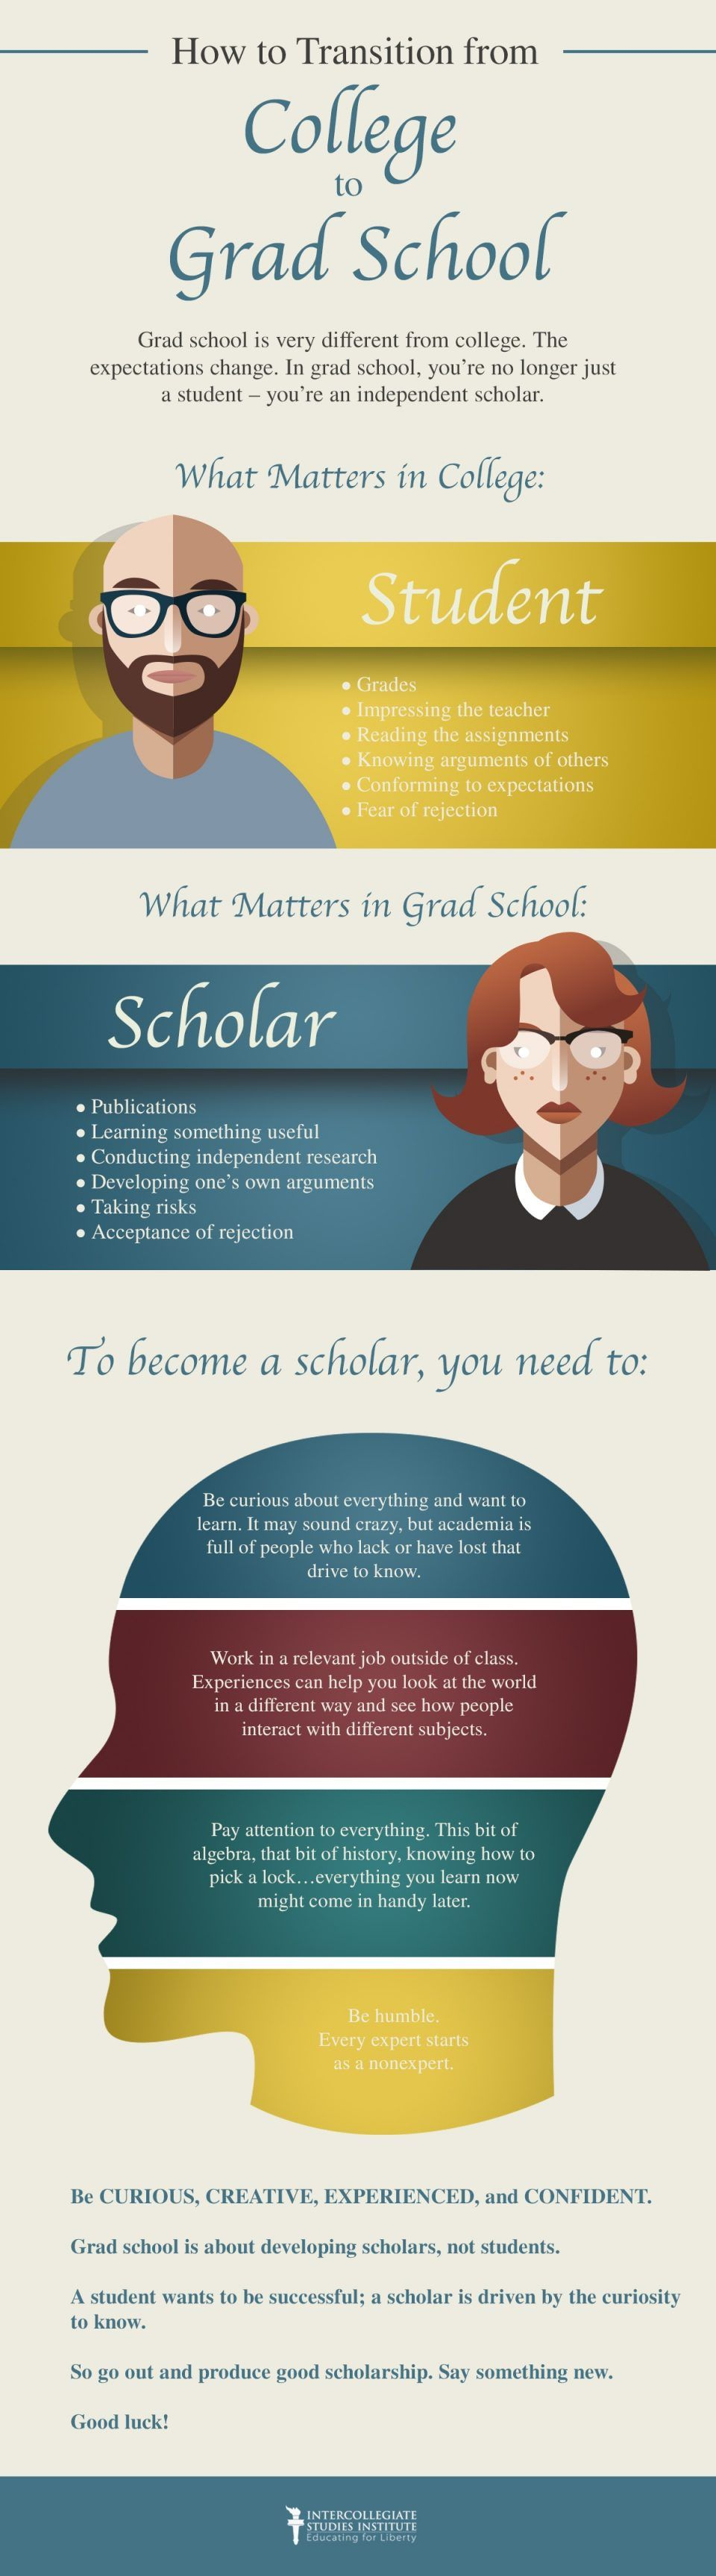 How to Transition from College to Grad School Infographic